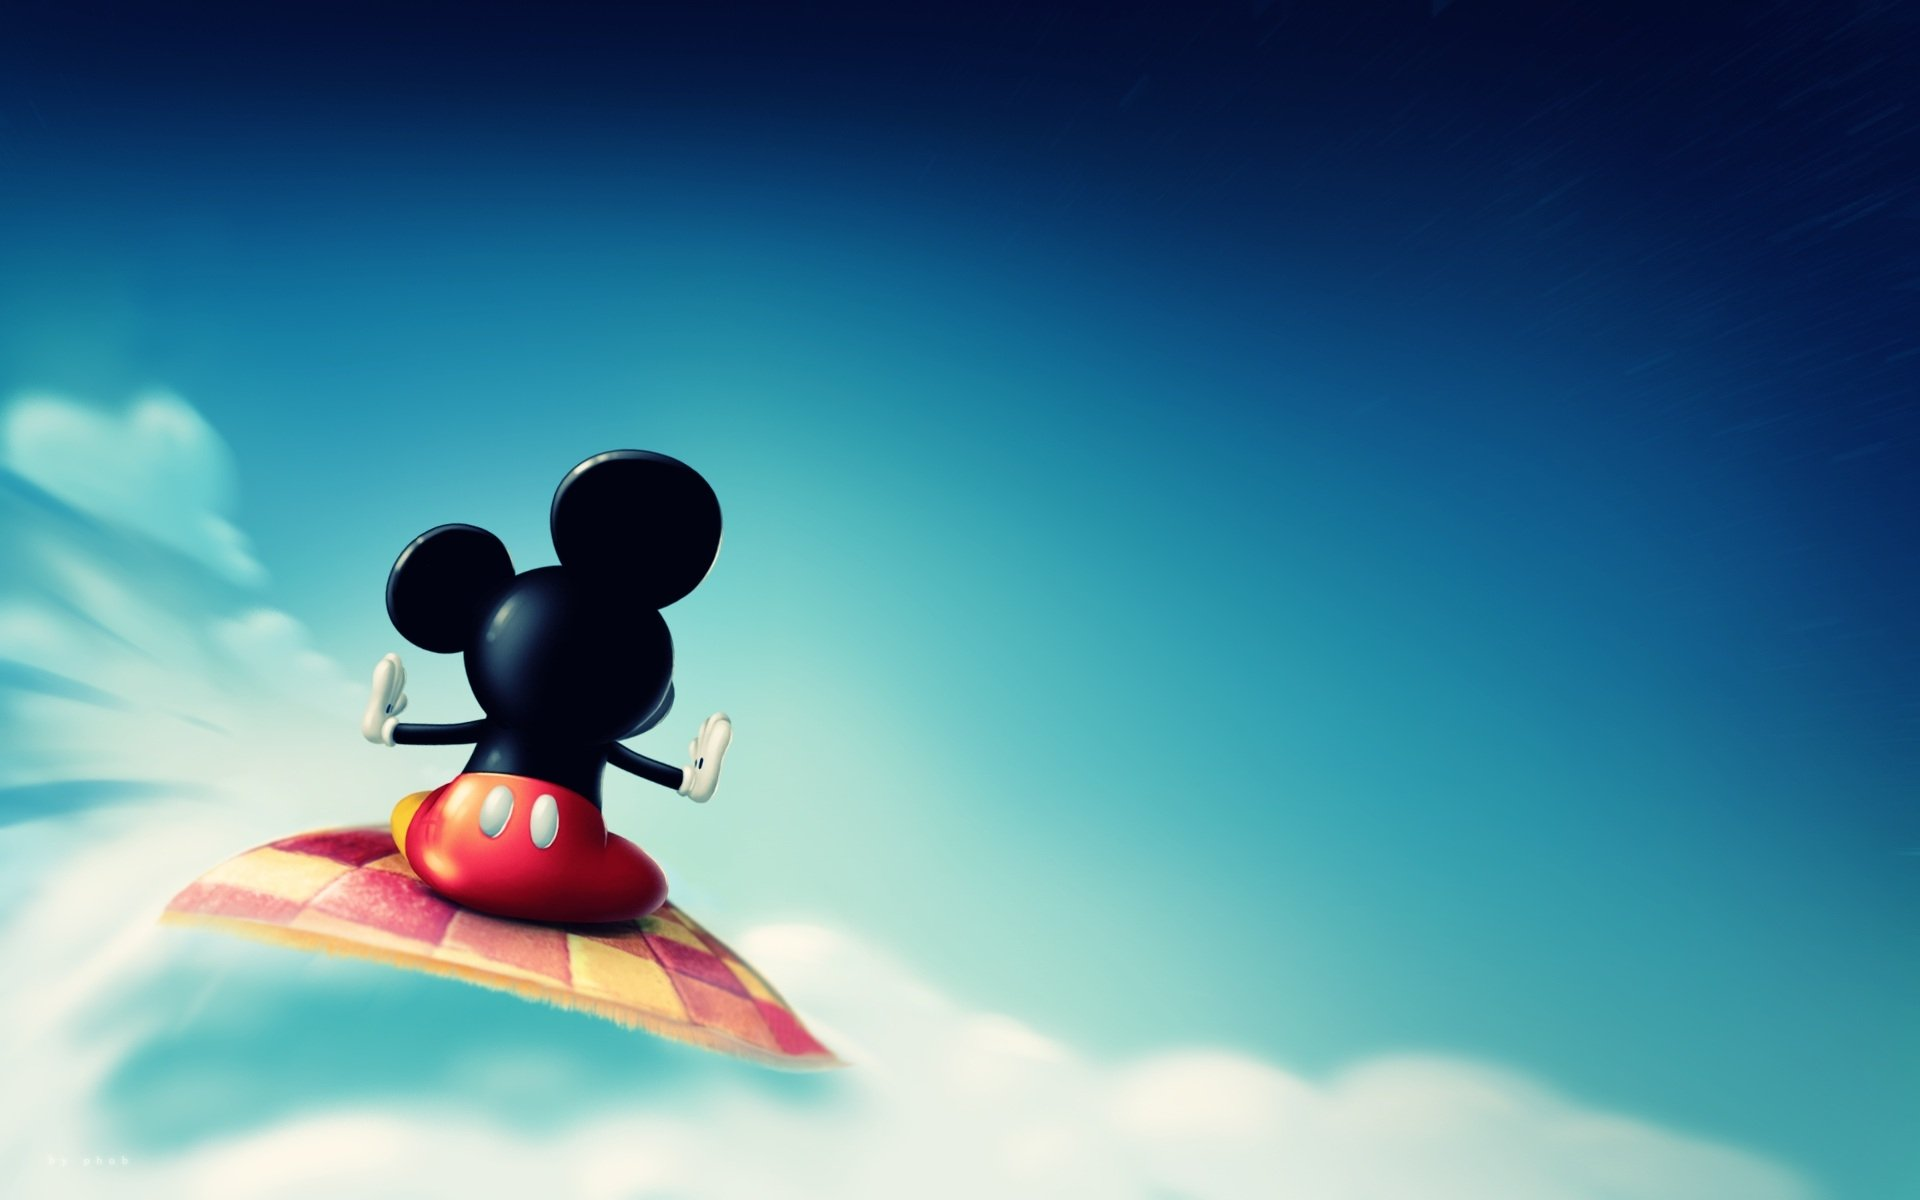 Mickey mouse full hd papel de parede and planos de fundo - Mickey mouse hd wallpaper 1366x768 ...